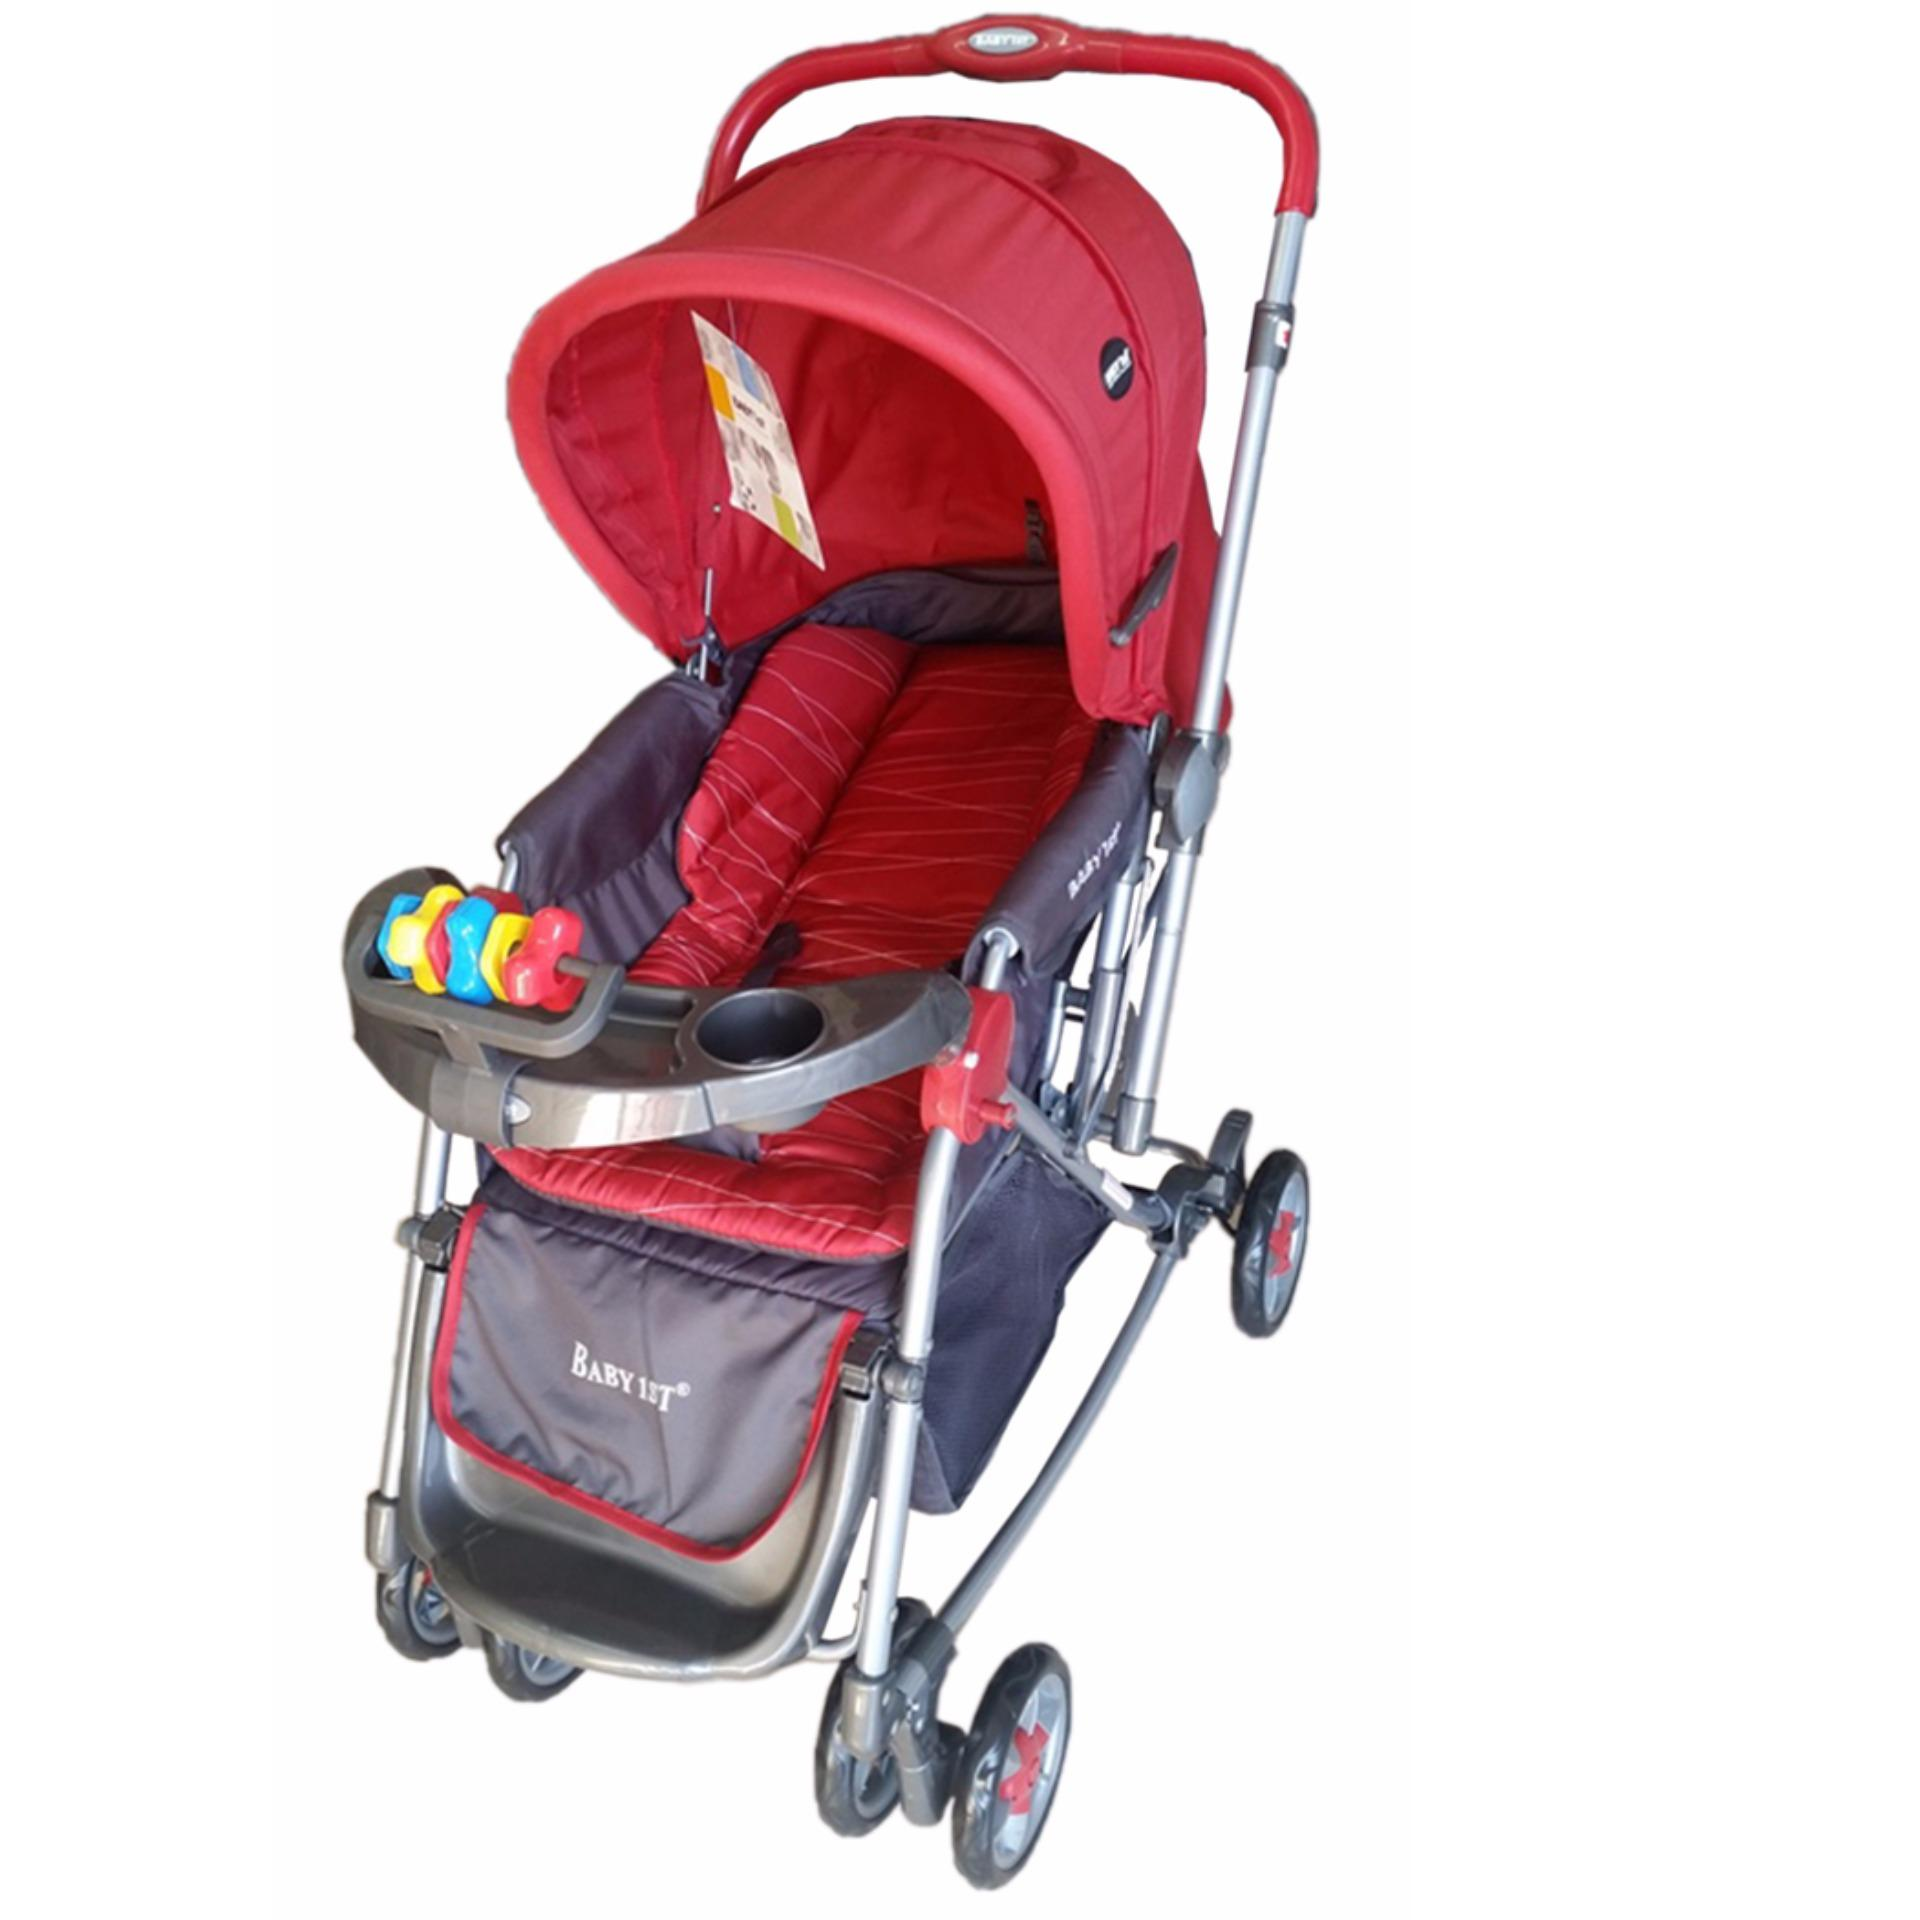 Rocking crib for sale philippines - Baby 1st Stroller With Rocking Feature Red